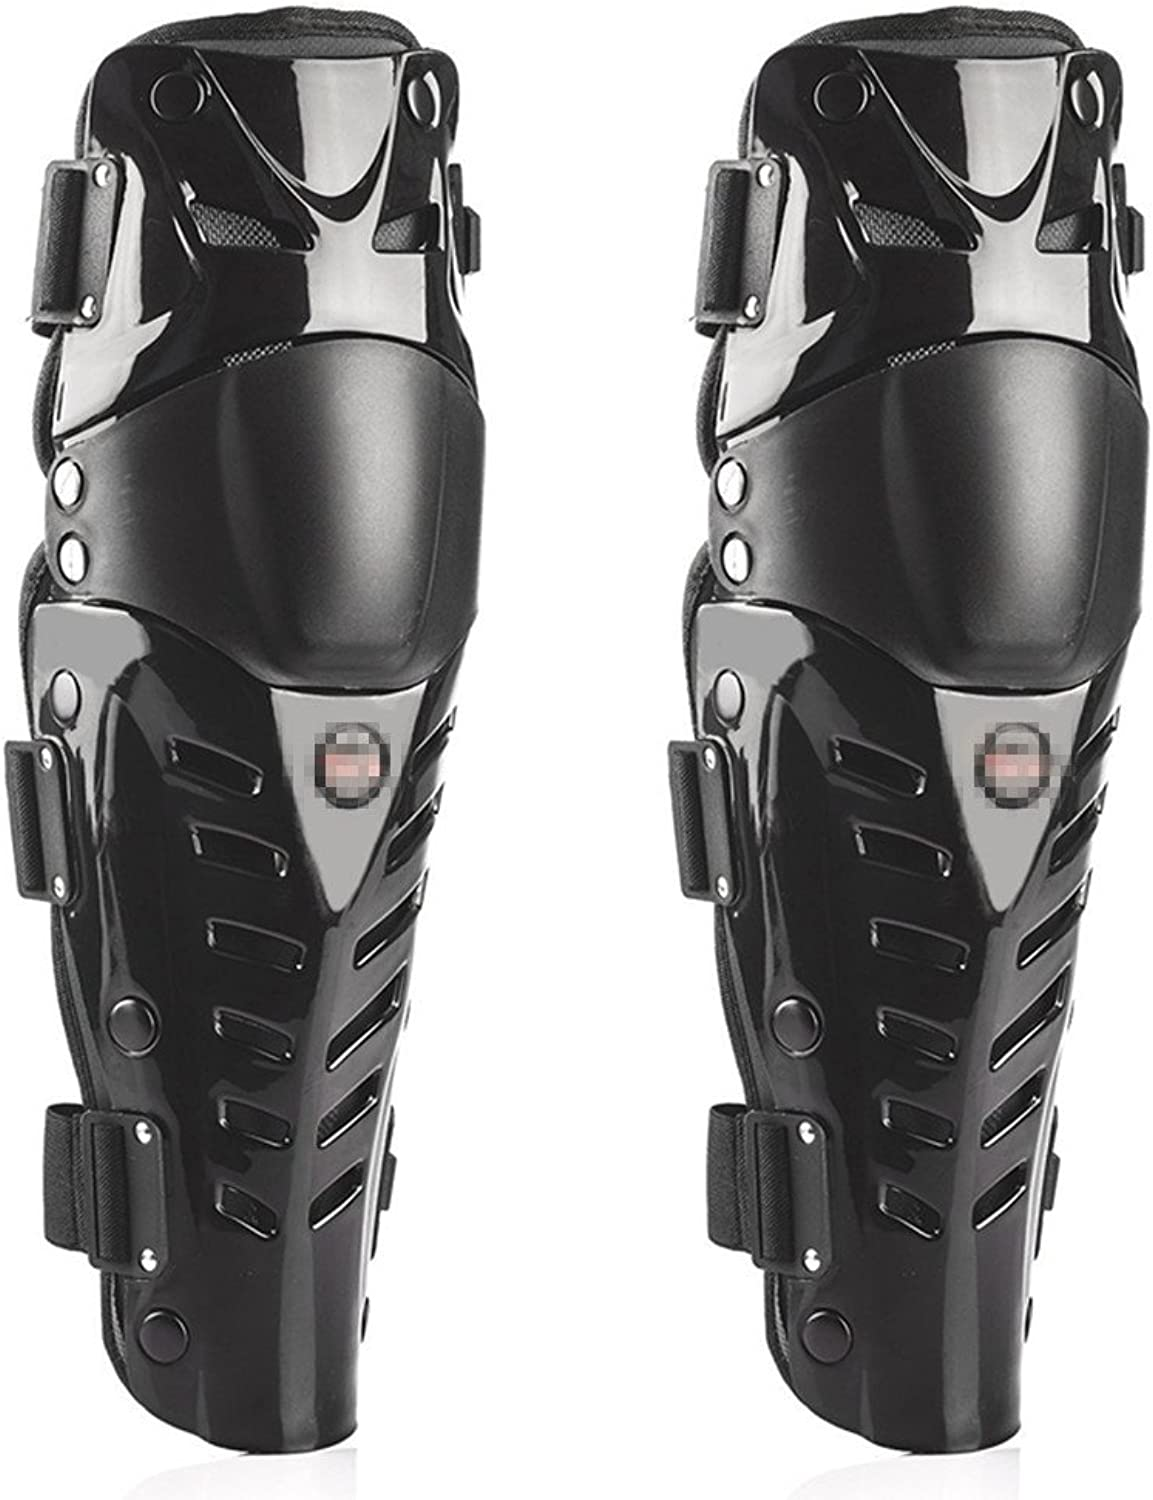 Baselay 1 Pair of Motorcycle Knee Shin Guard Pads Three Sections Breathable Adjustable Knee Cap Pads Predector Gear Armor for Adults Motorcycle Cycling Racing